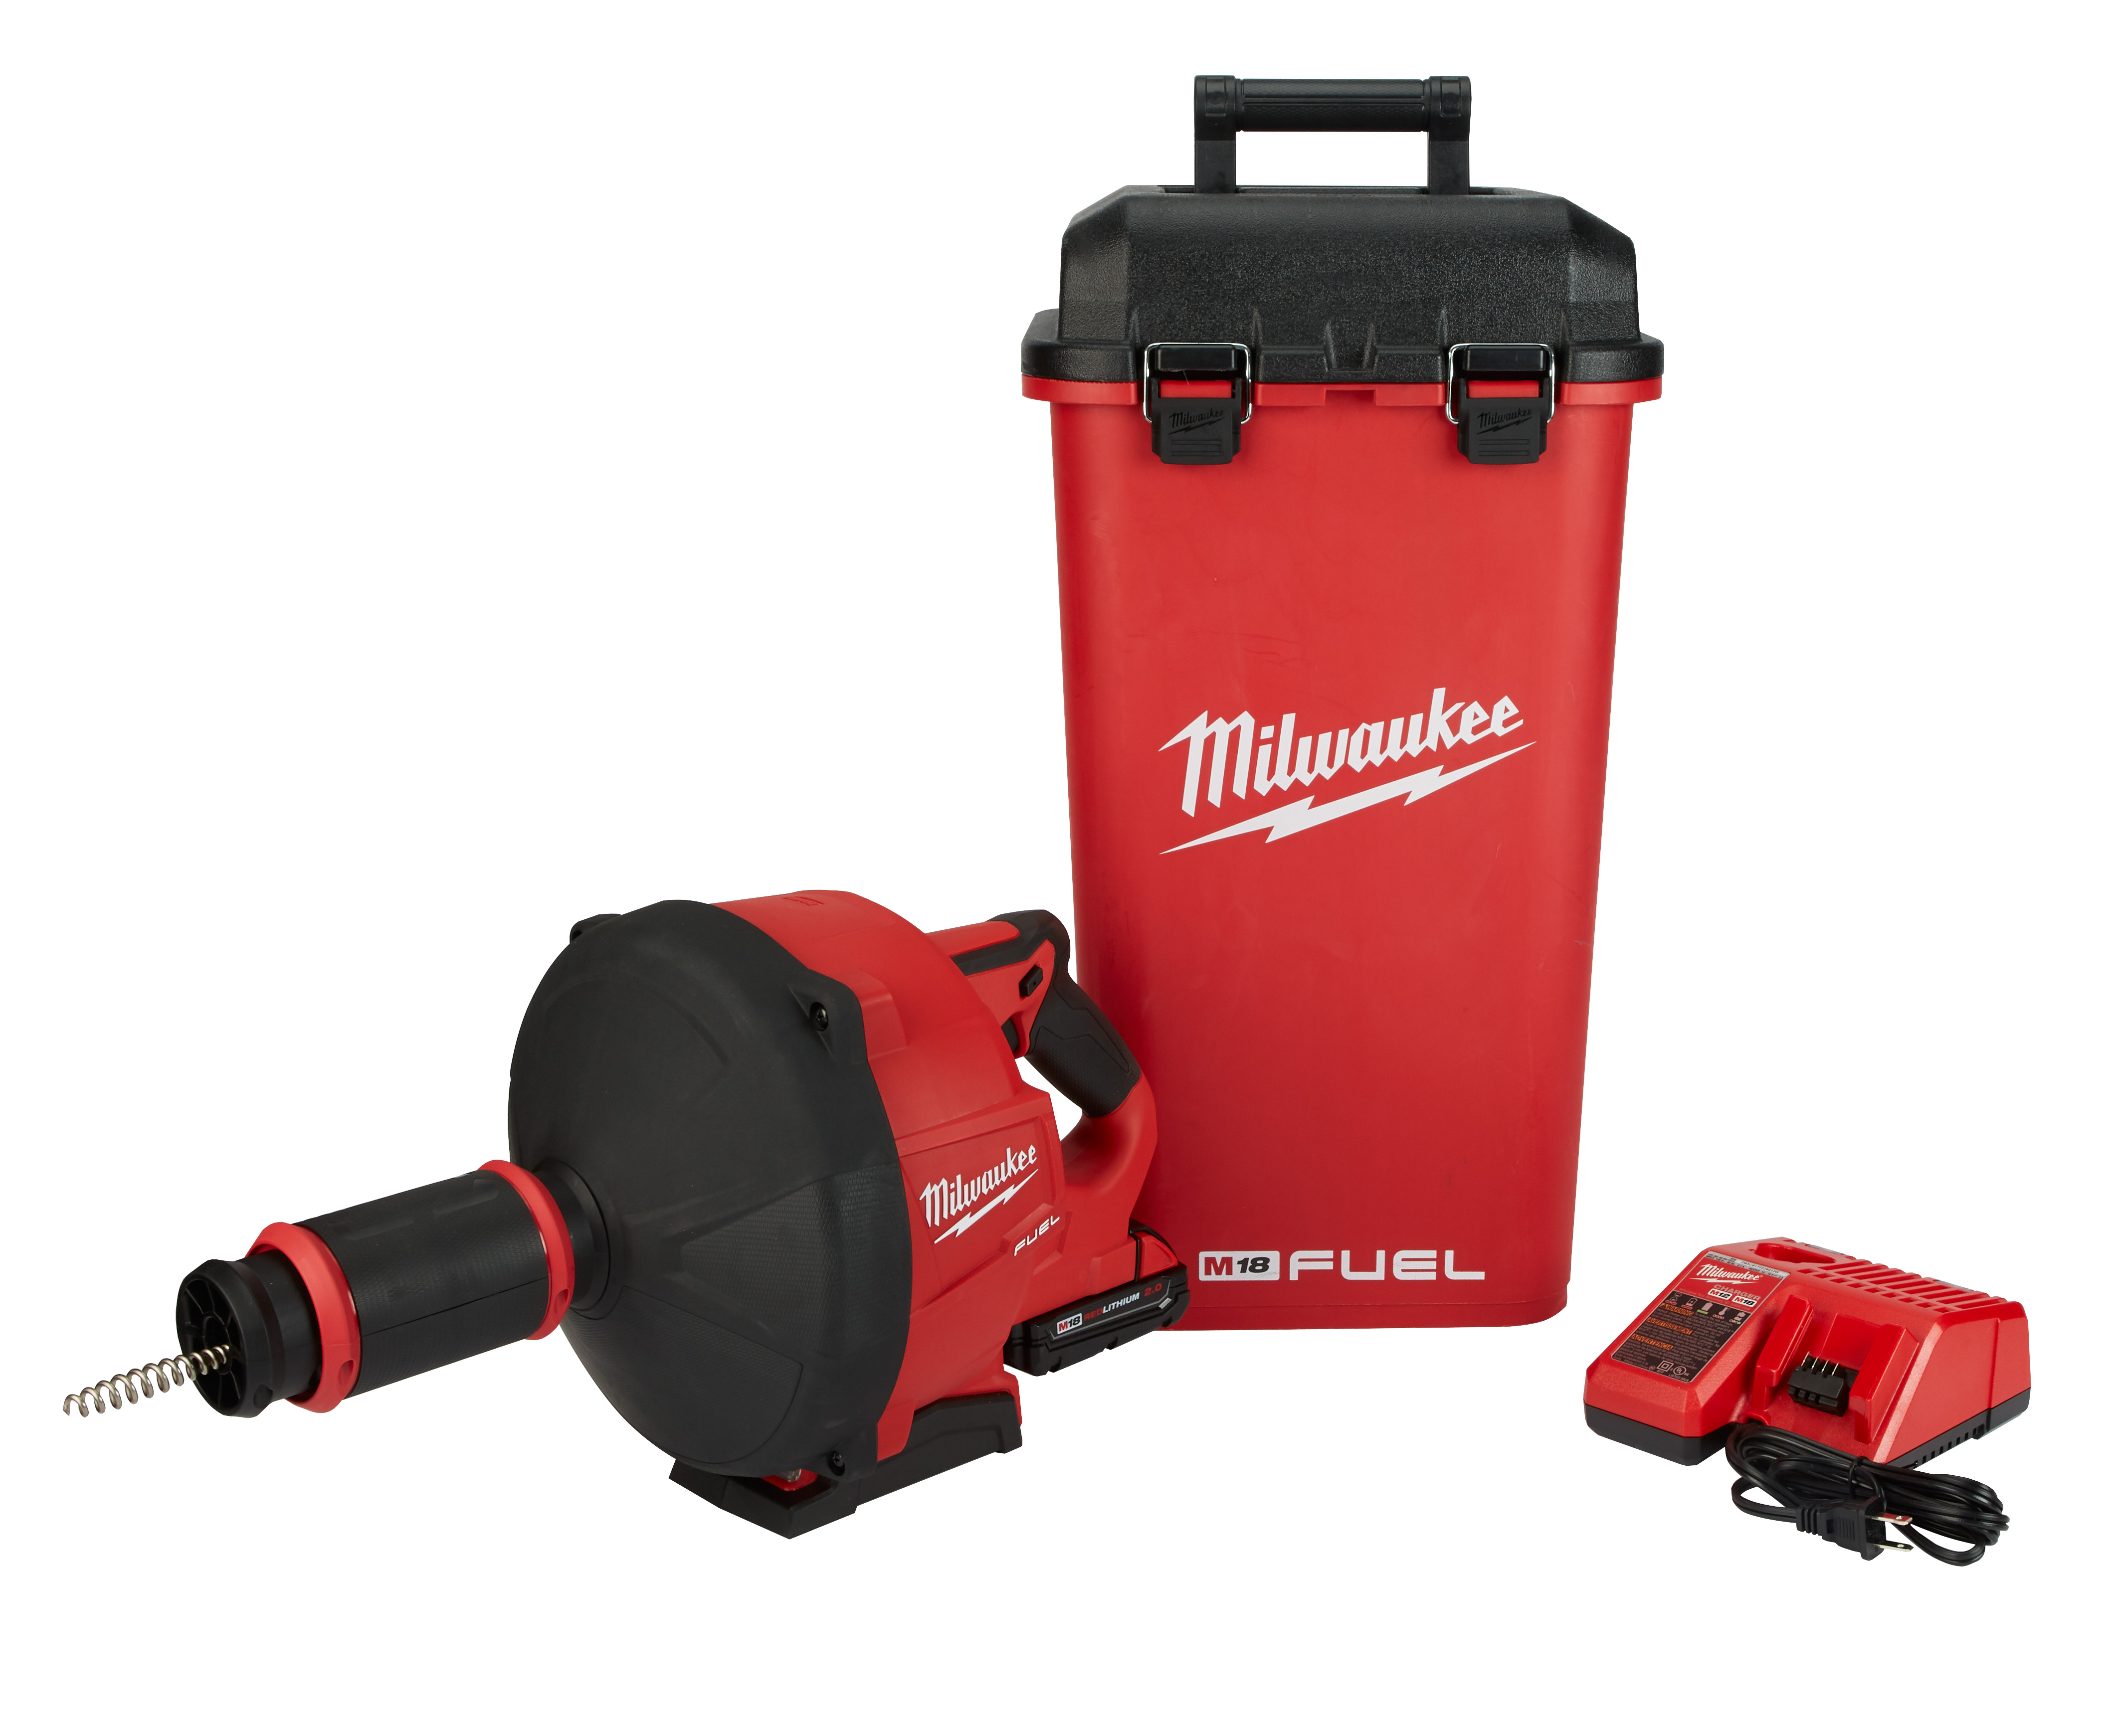 Milwaukee® M18™ FUEL™ 2772A-21 Cordless Drain Gun Kit With CABLE-DRIVE™ Locking Feed System, 1-1/4 to 3 in Drain Line, 50 ft Max Run, 18 VDC, Plastic Housing